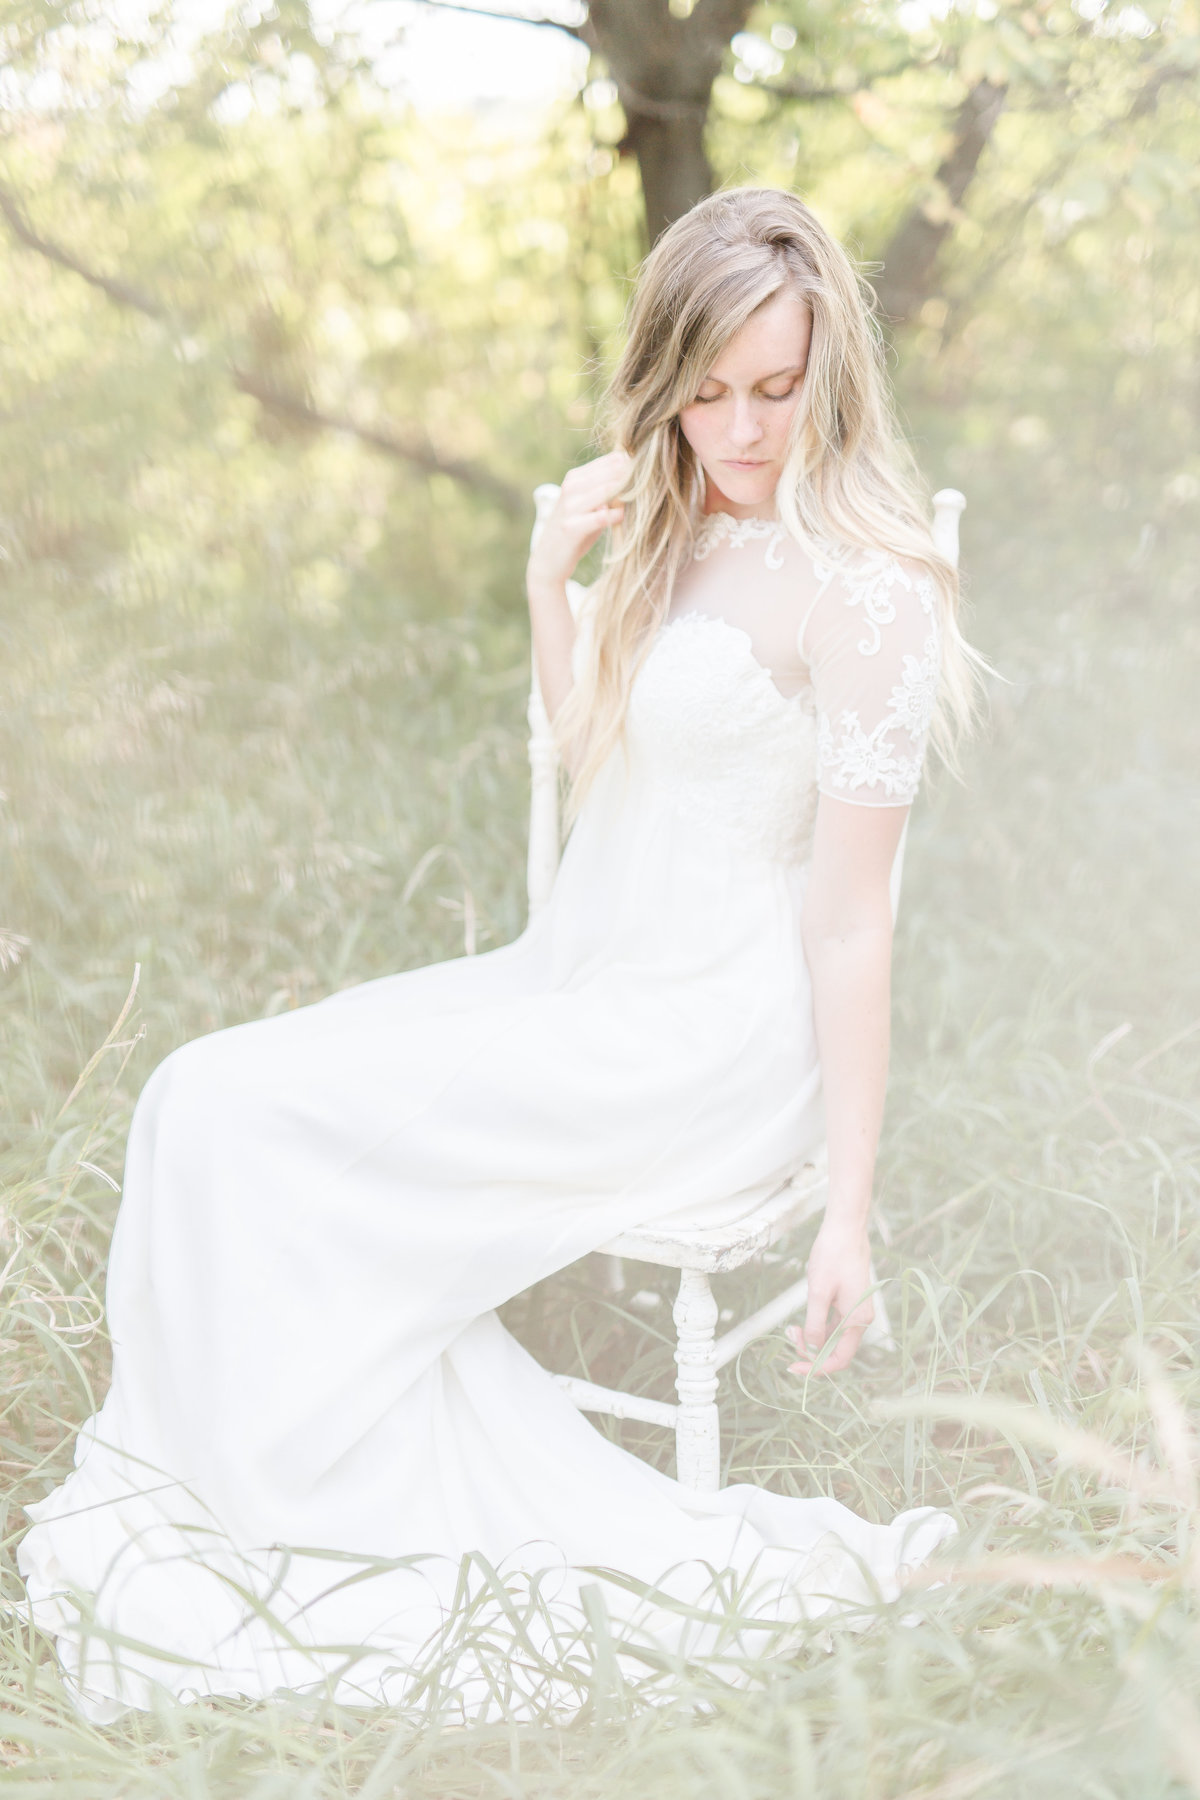 Kailey - Styled Shoot - New Edits-112